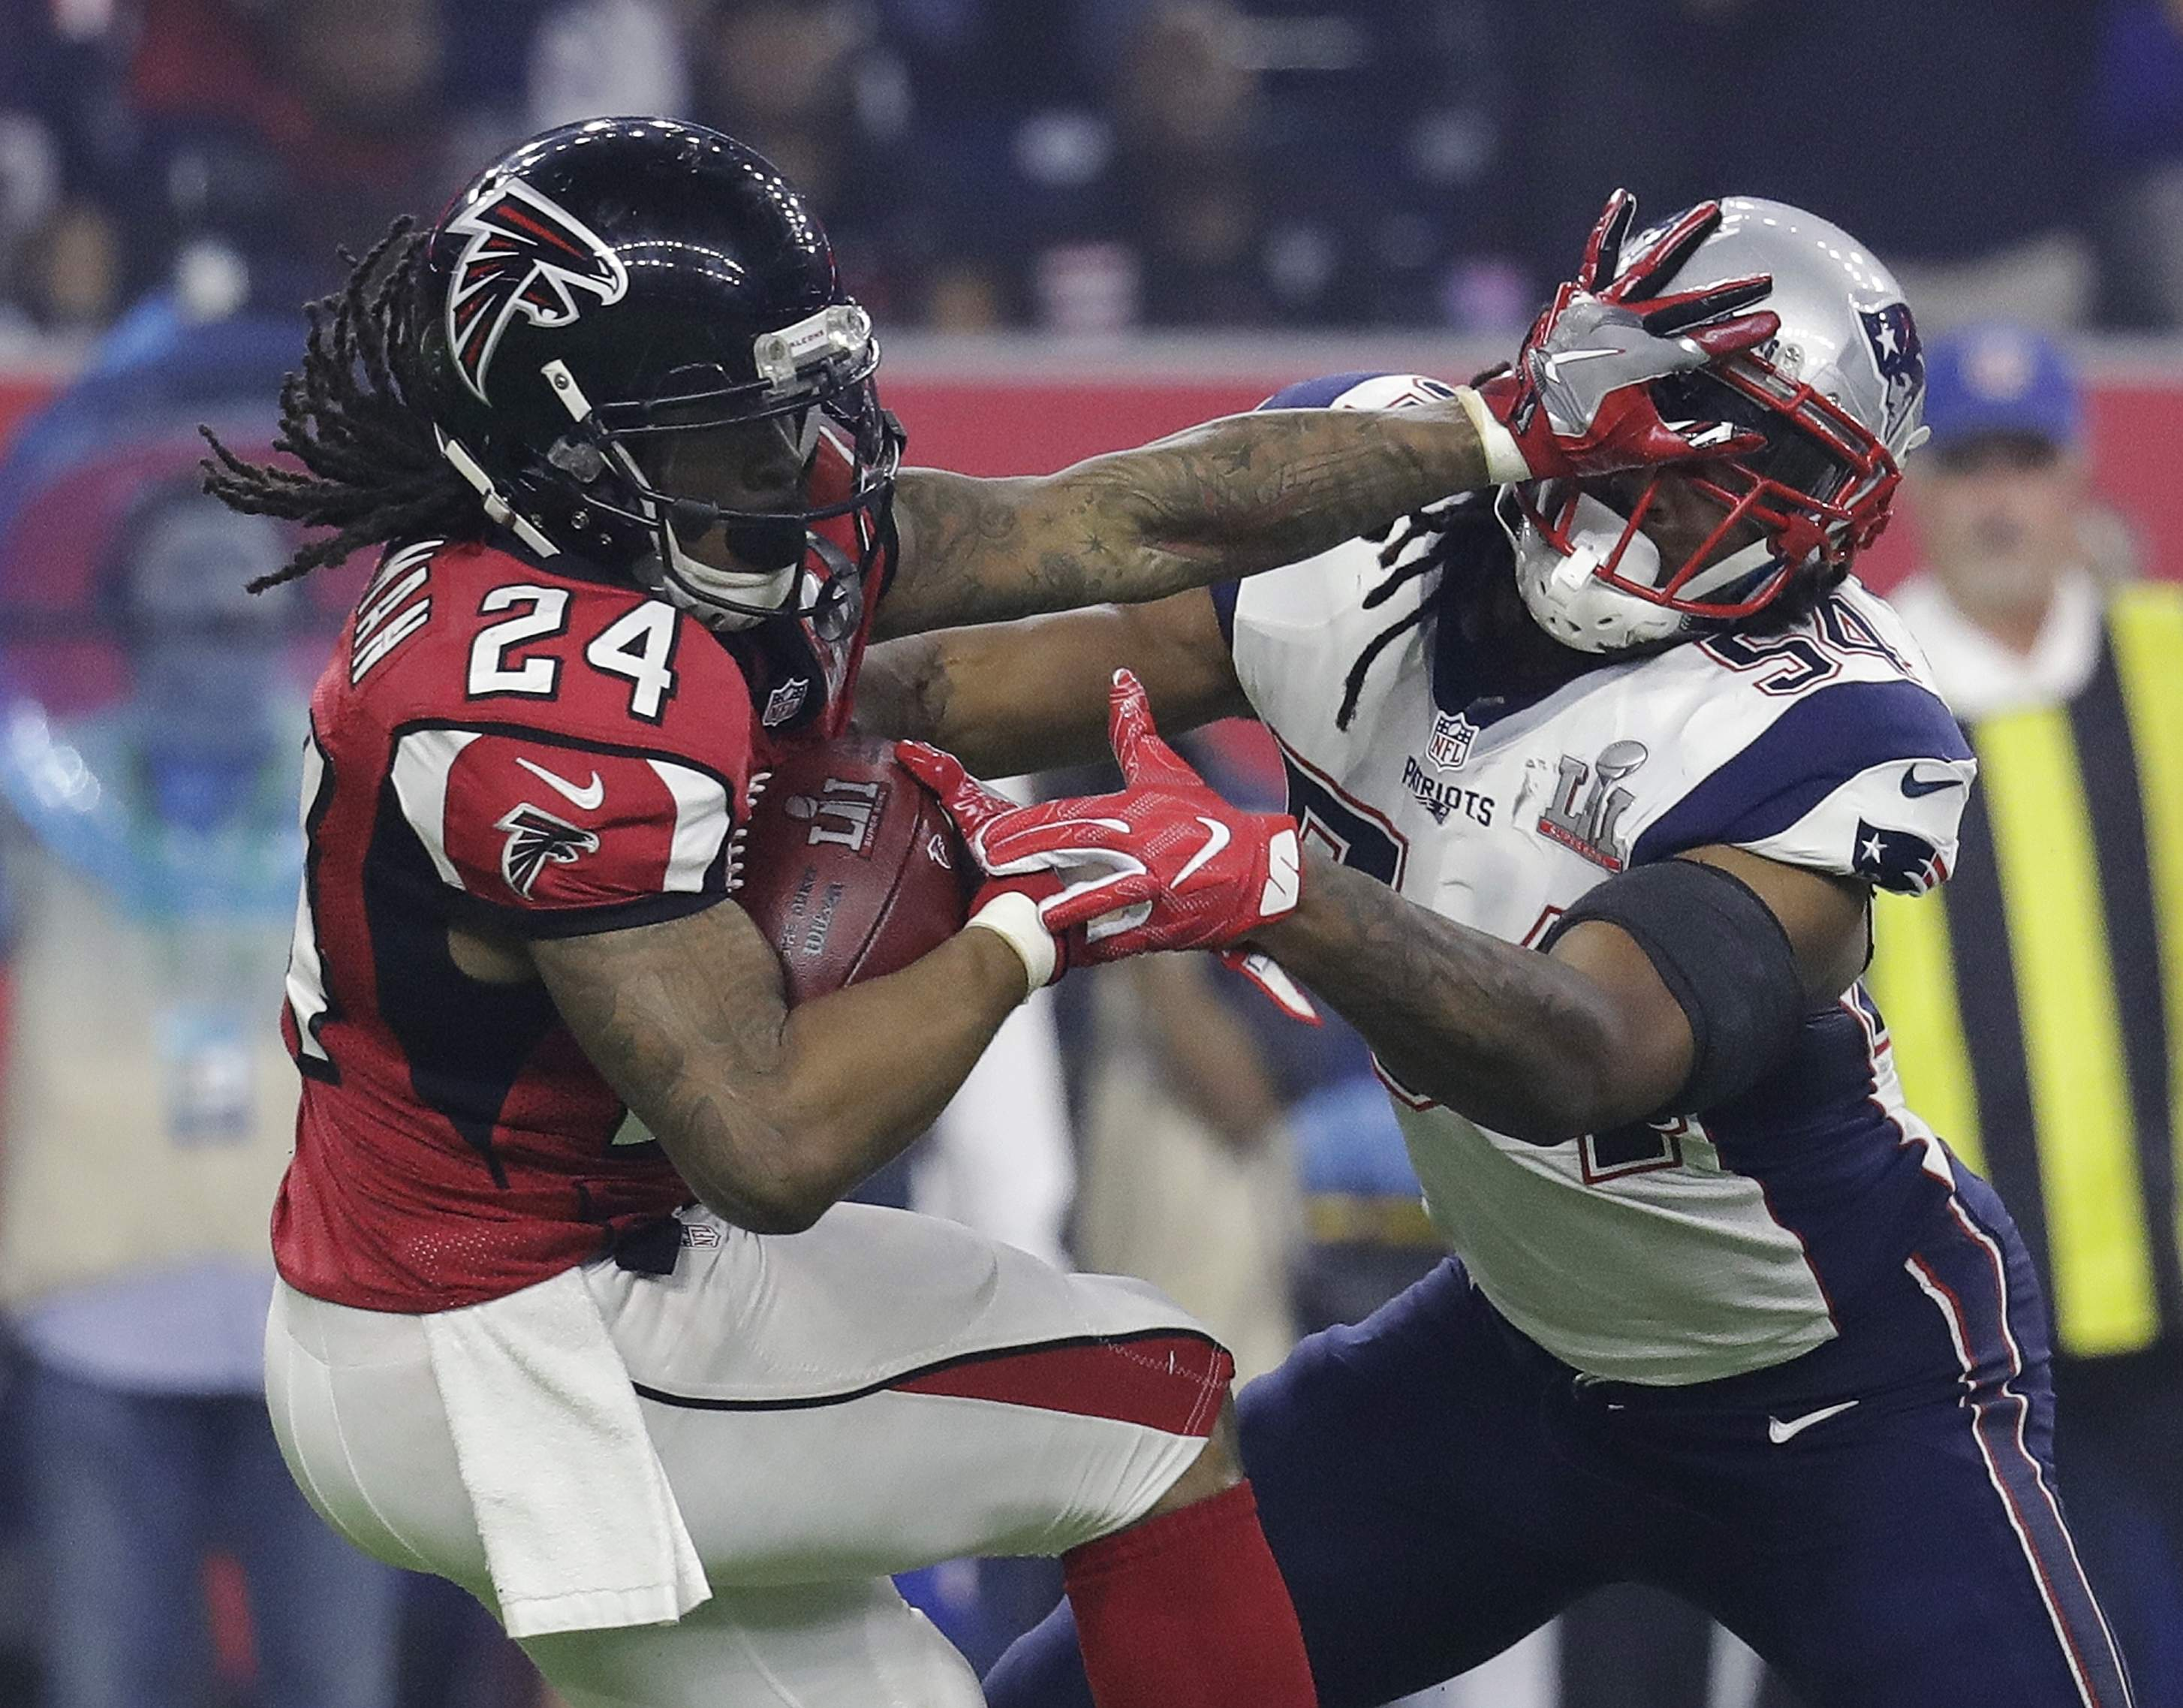 The Atlanta Falcons' Devonta Freeman runs against the New England Patriots' Dont'a Hightower during the second half of Super Bowl 51 Sunday, Feb. 5, 2017, in Houston. THE ASSOCIATED PRESS